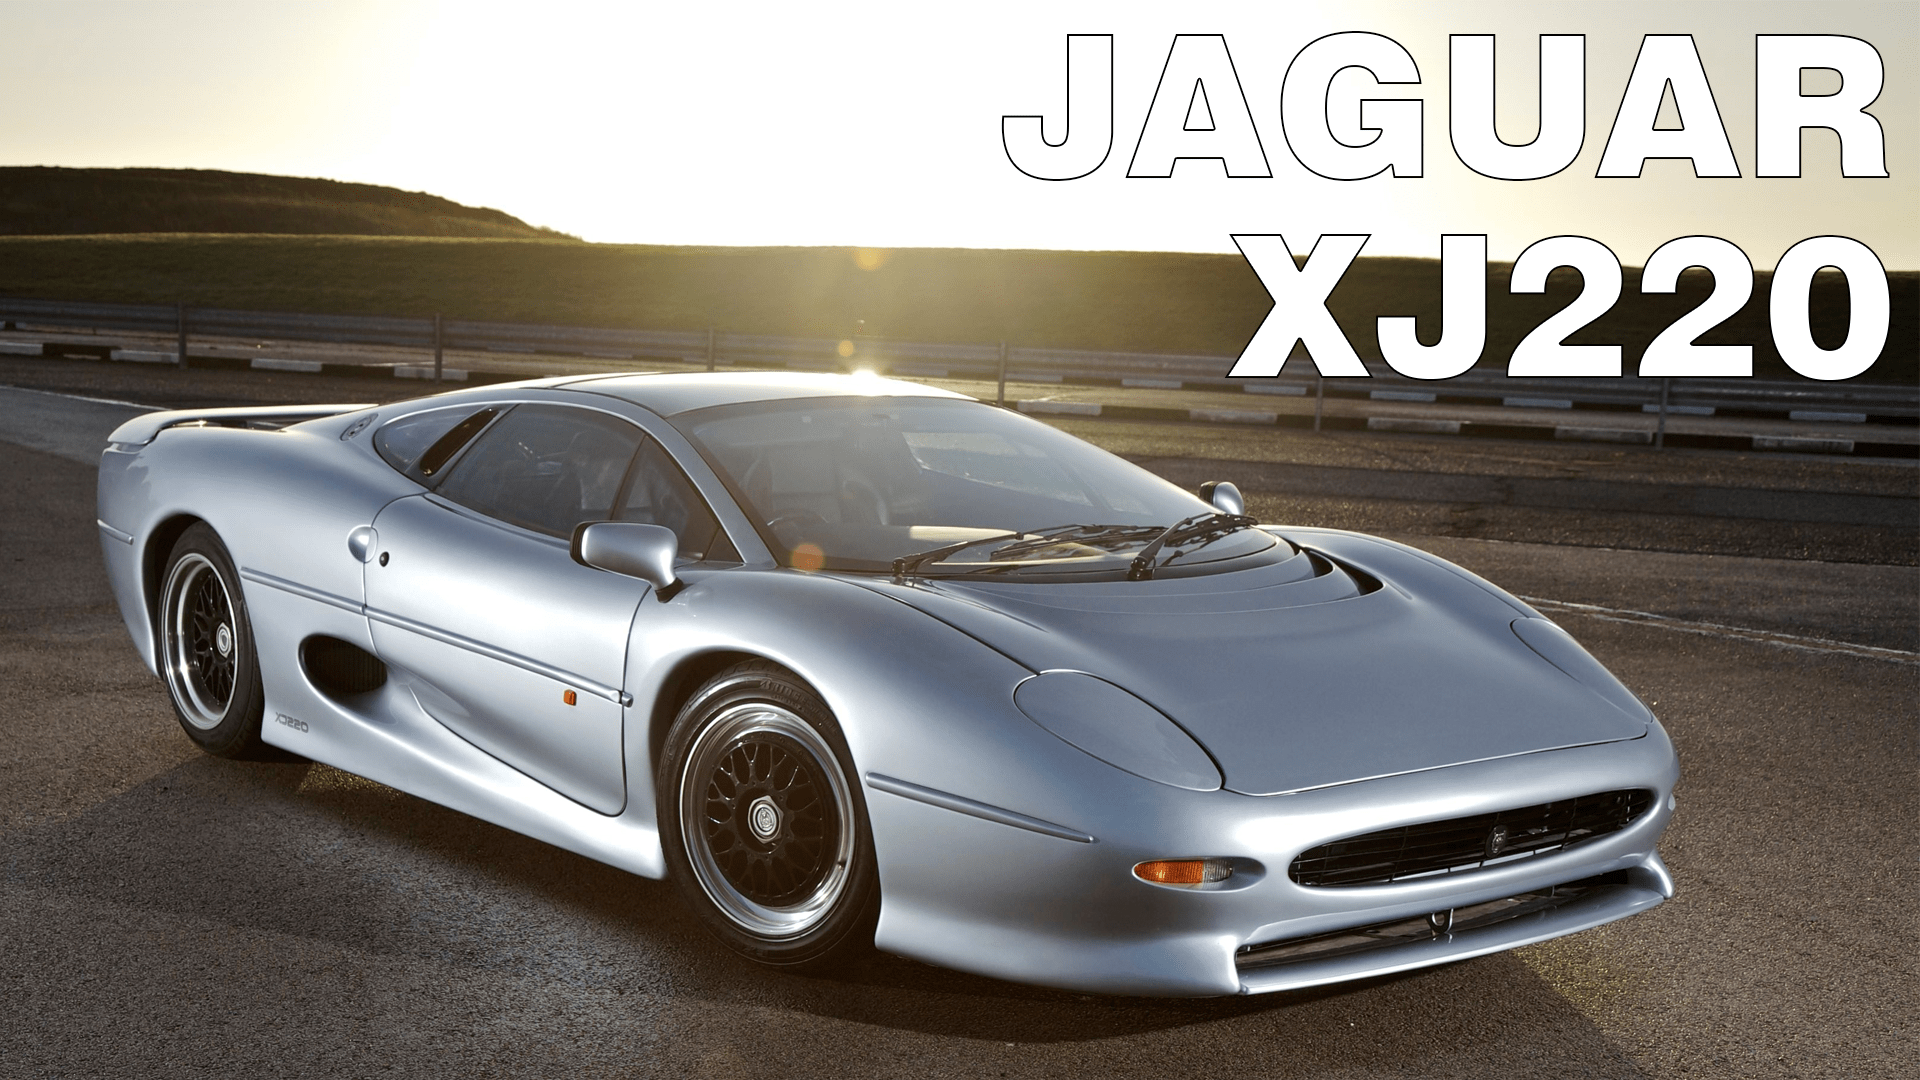 Jaguar Xj13 Blueprint The Complete History Of The Jaguar Xj220 Garage Dreams